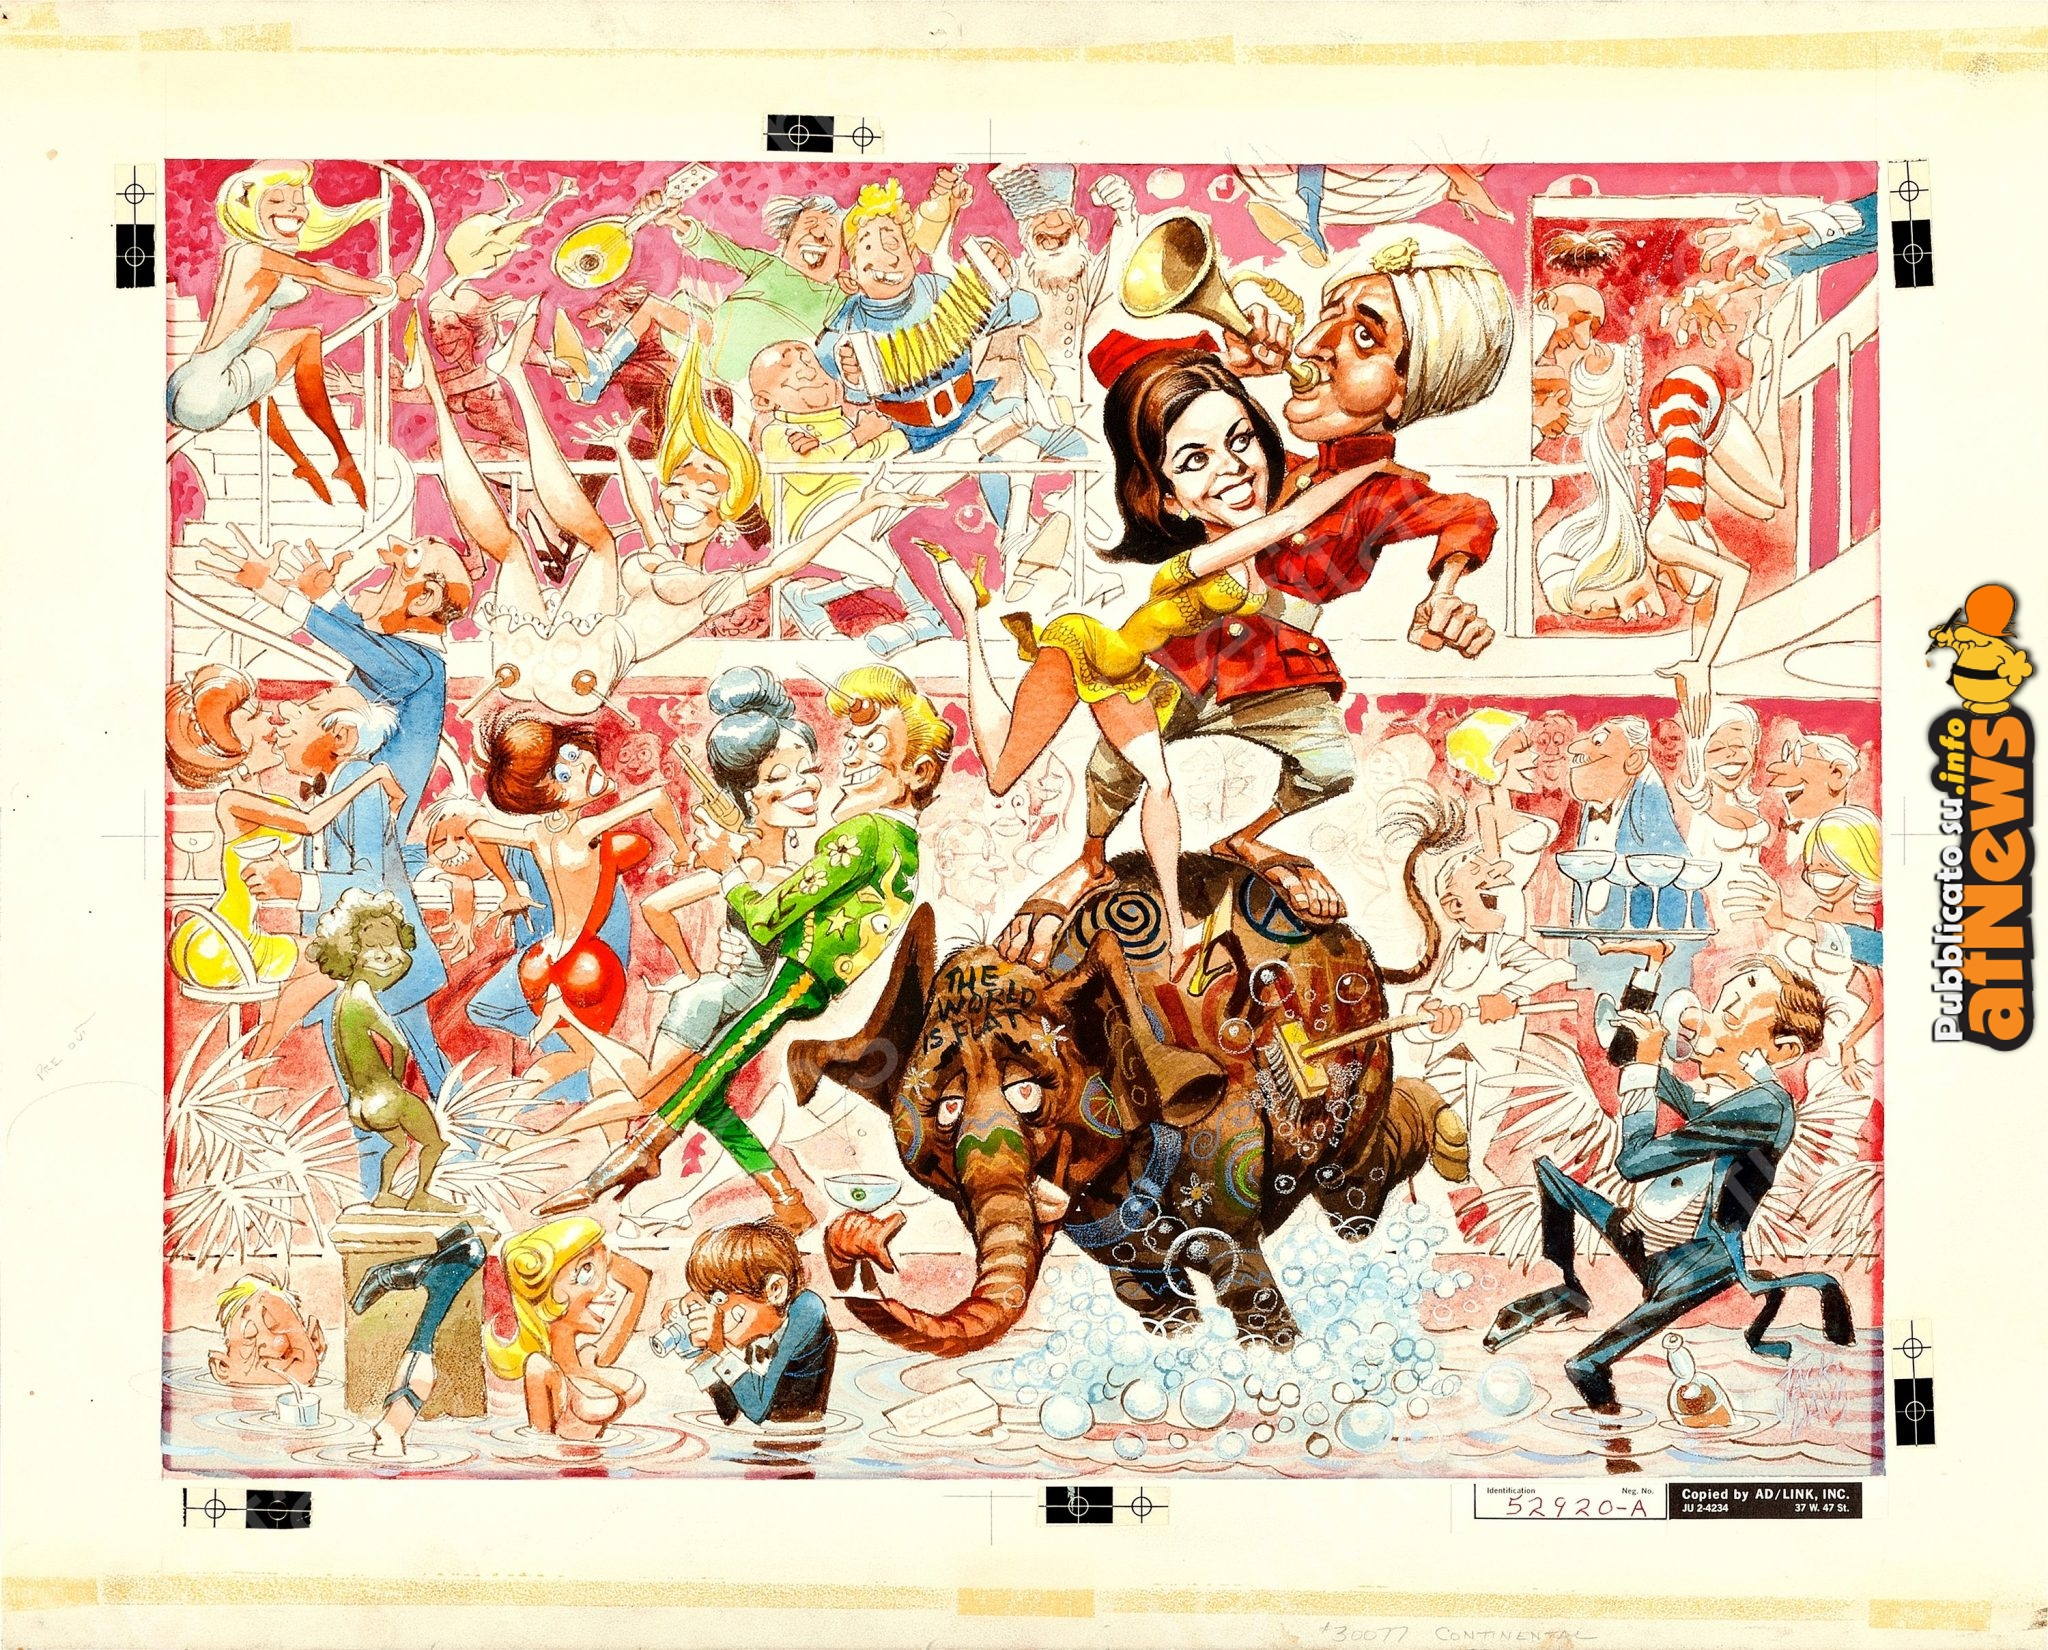 The Party poster by Jack Davis